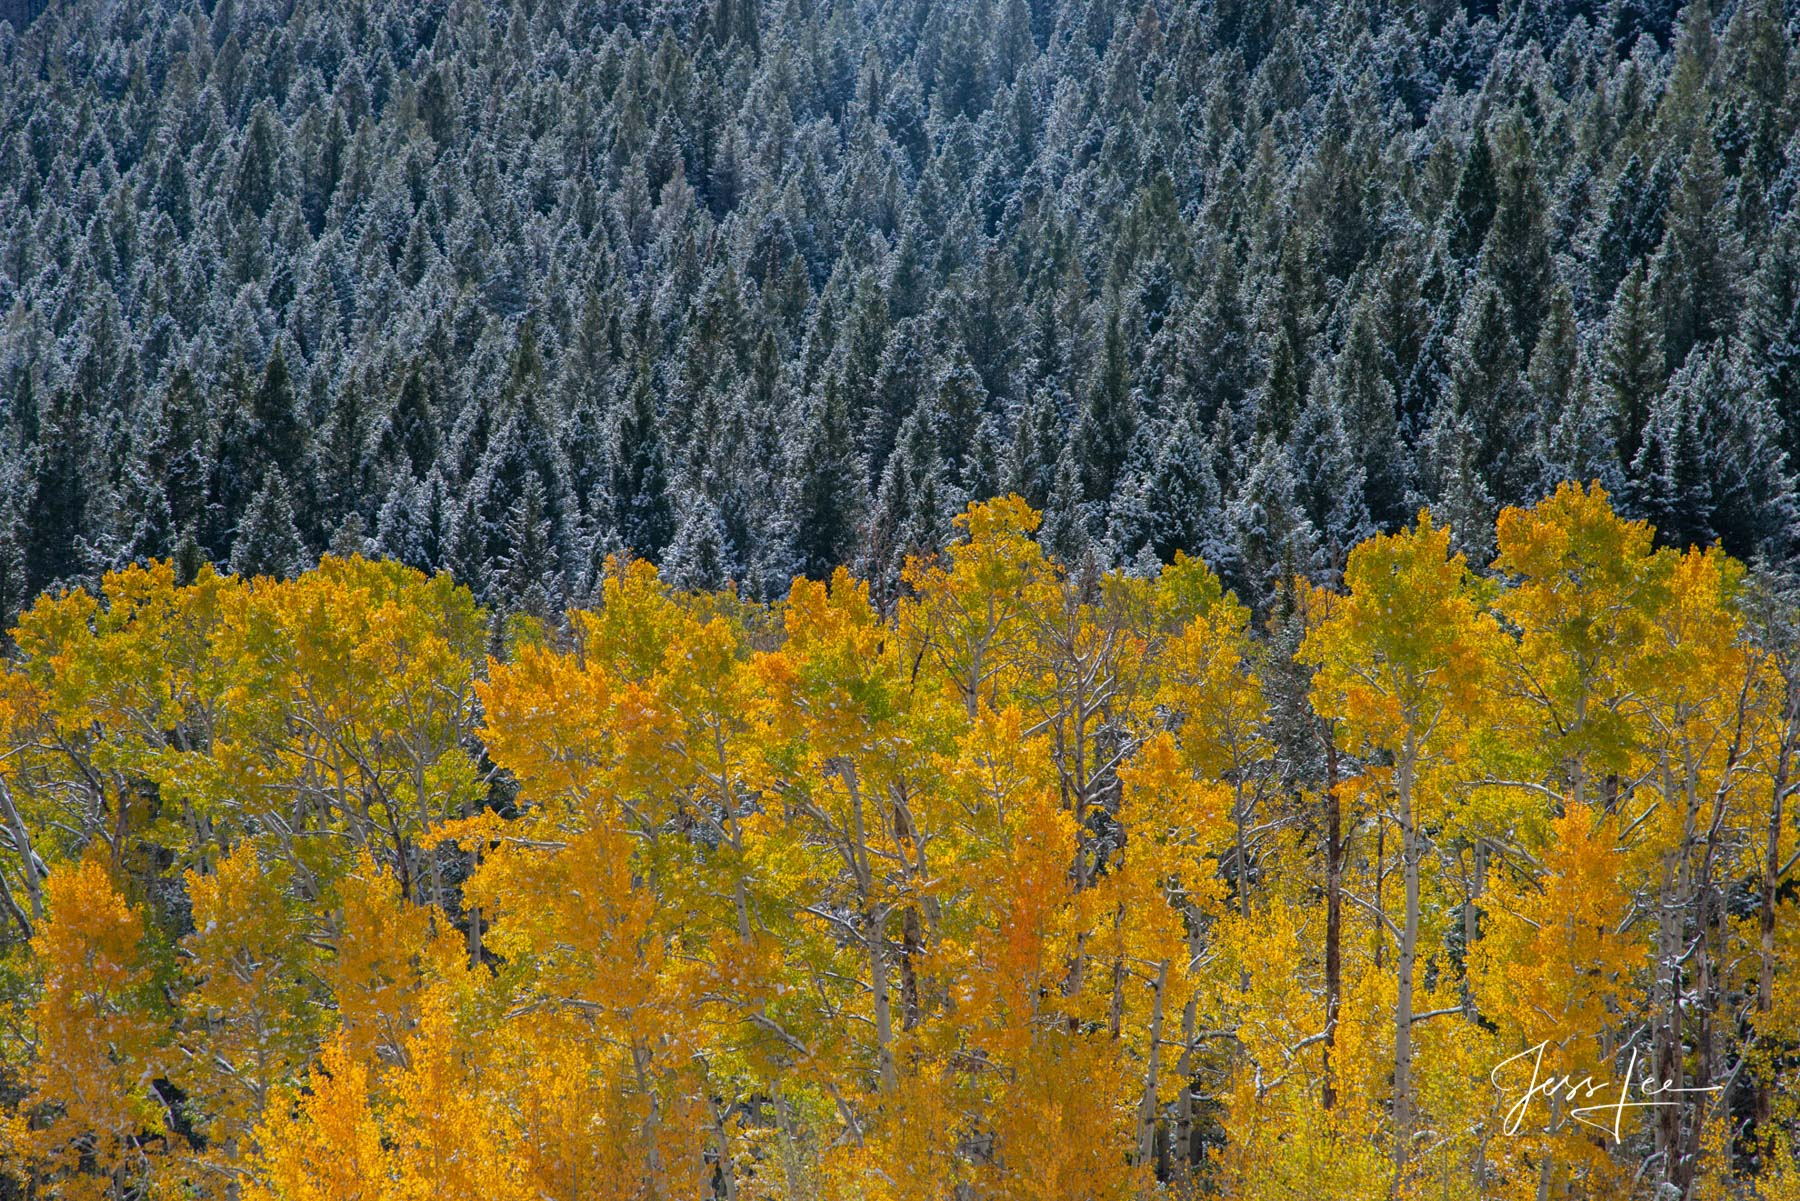 Limited Edition of 50 Exclusive high-resolution Museum Quality Fine Art Prints of turning Aspen trees with a background ofsnow...